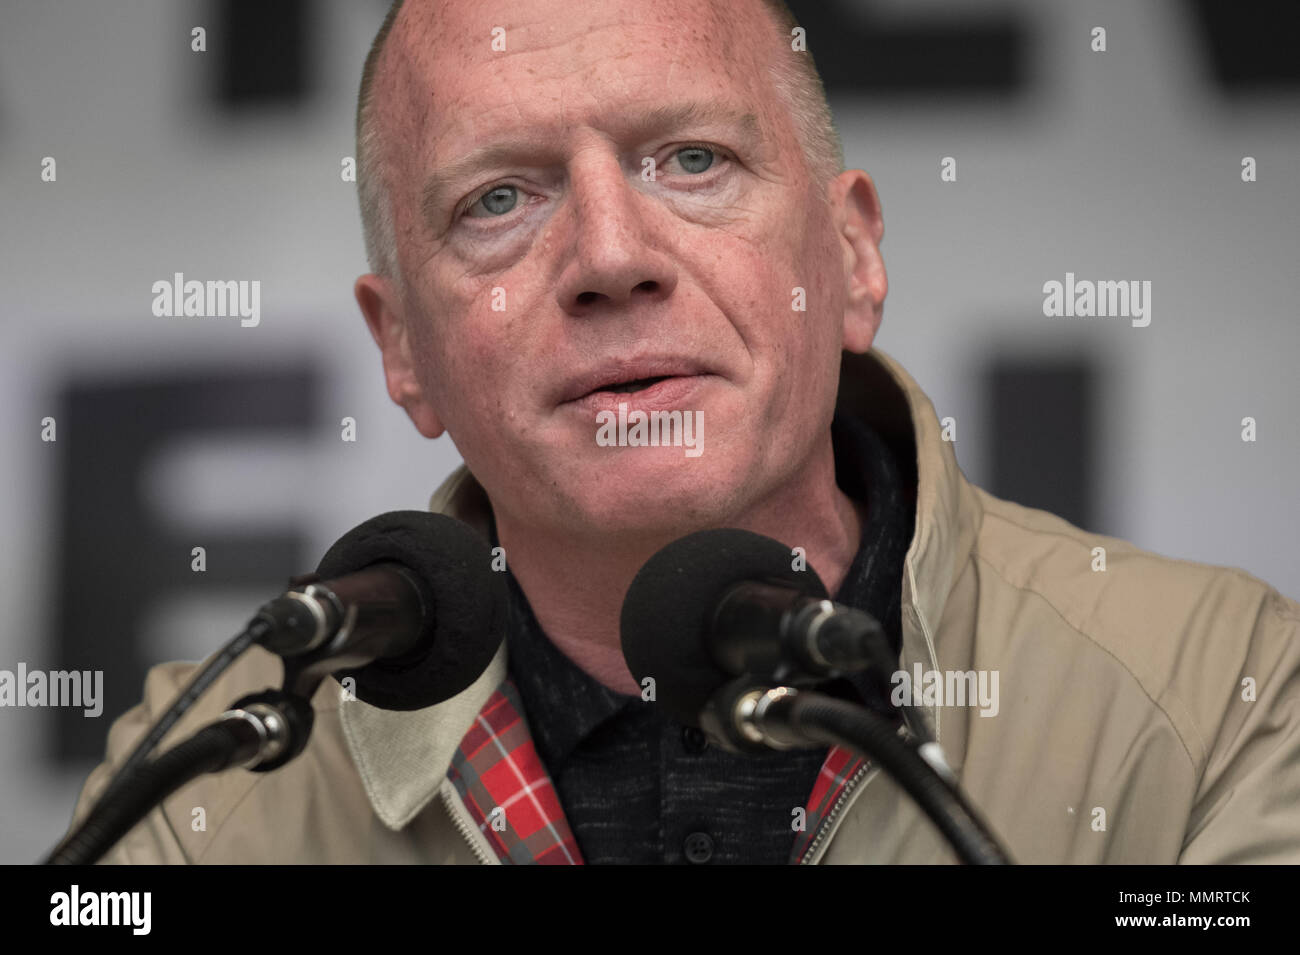 London, UK. 12th May, 2018. Matt Wrack, General Secretary of the Fire Brigades Union(FBU), speaks to a crowd of  thousands of trade unionists during a TUC rally in Hyde Park. Credit: Guy Corbishley/Alamy Live News - Stock Image